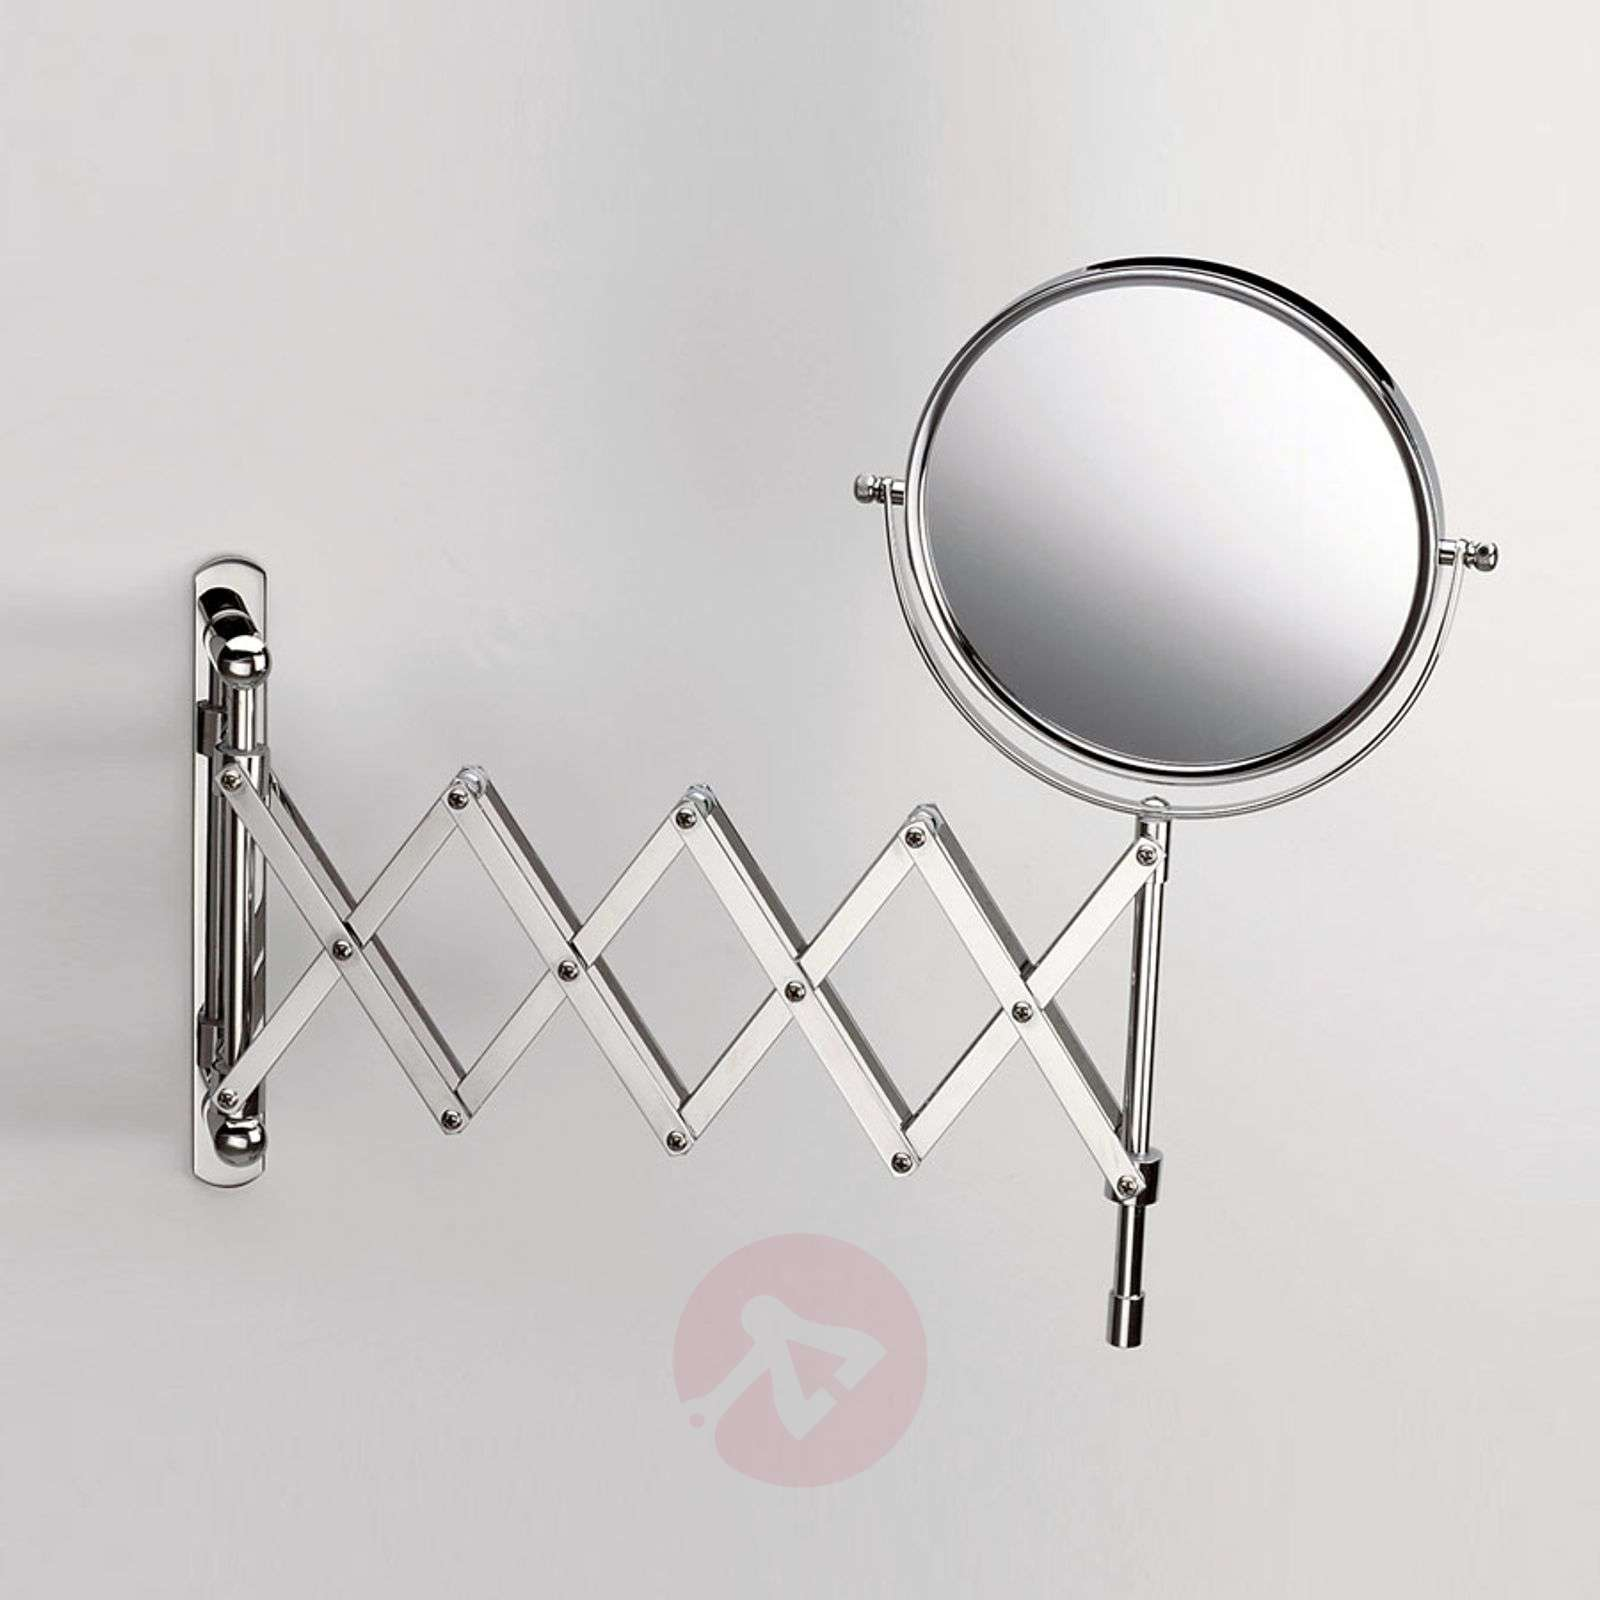 PRICK flexible cosmetic wall mirror, 5x-2504198-01